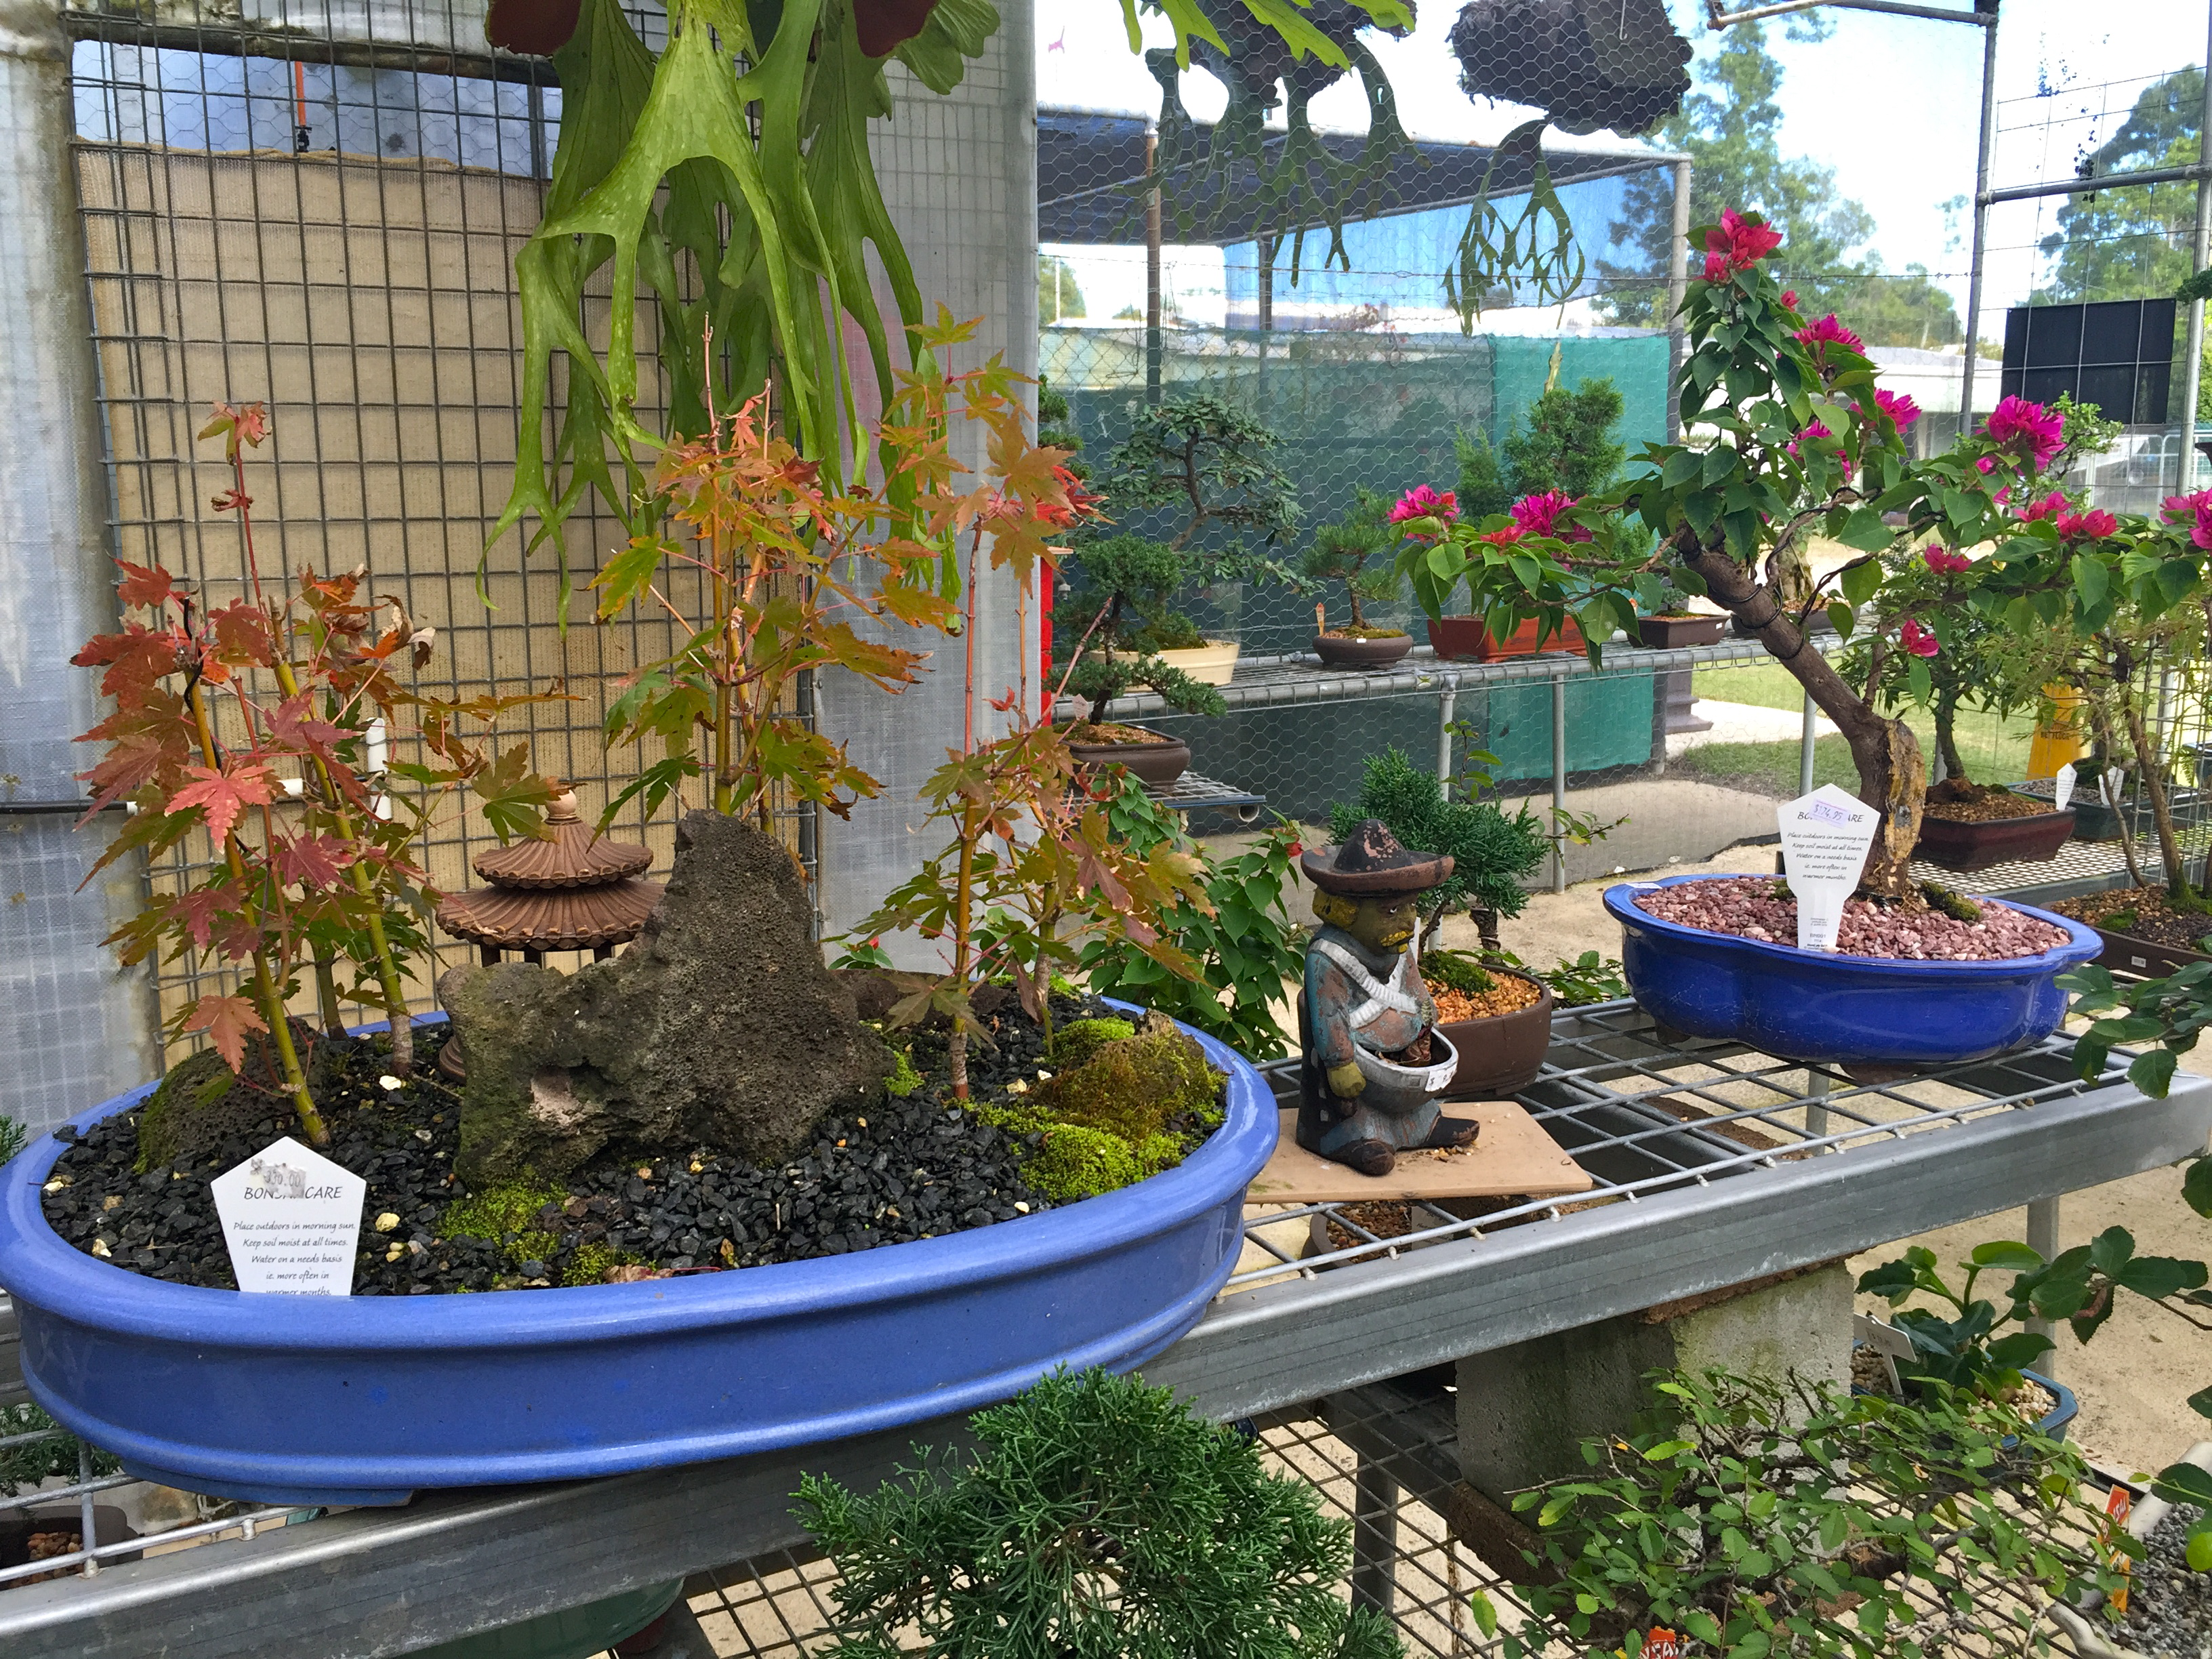 Affordable bonsai trees at Bonsai Northside, Brisbane. © GreenSocks